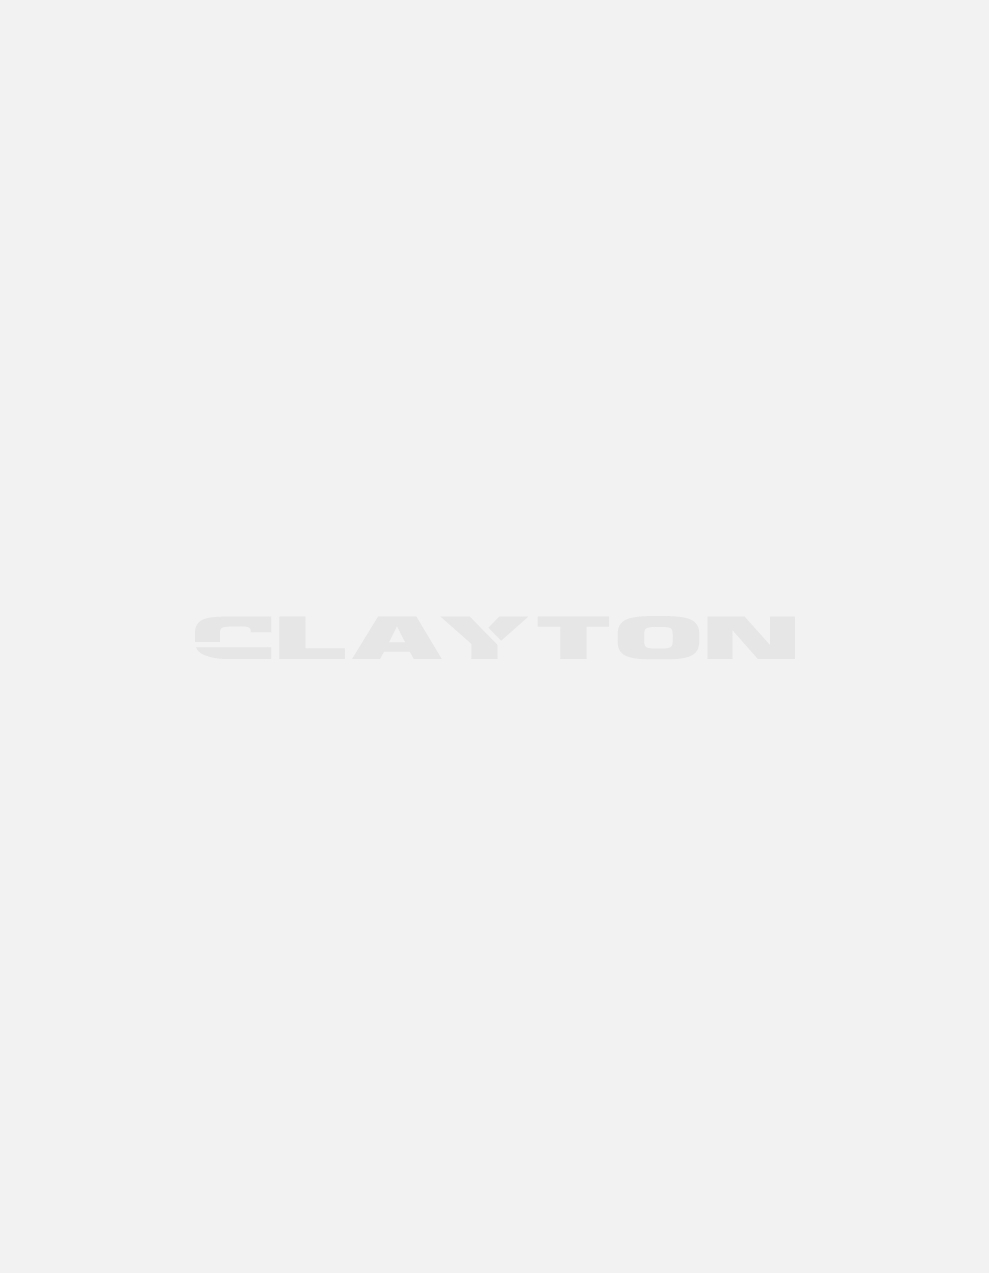 Raw-cut neck pocket t-shirt Raw-cut crew neck t-shirt with chest pocket, plain color.